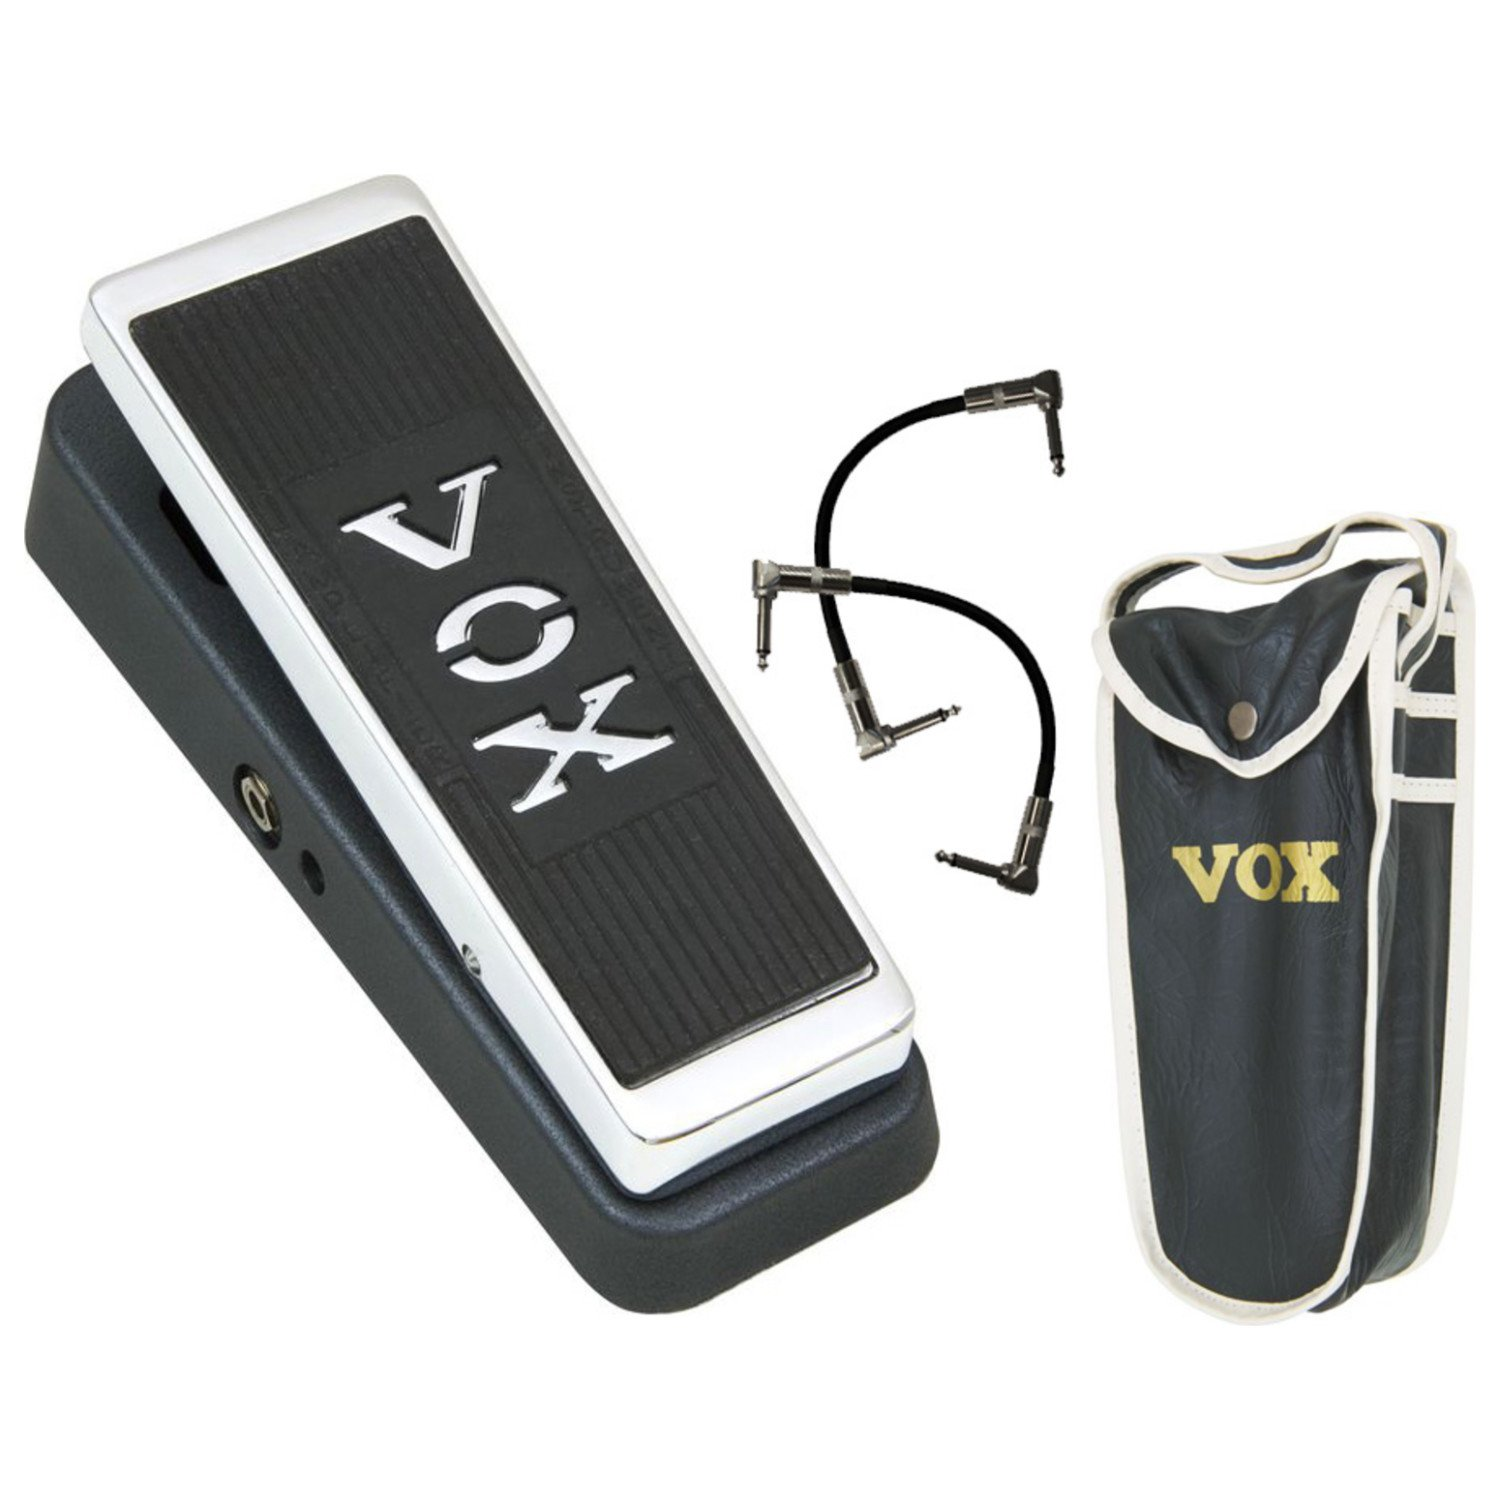 Vox V847 Wah-Wah Pedal w/2 Free 6'' Patch Cables